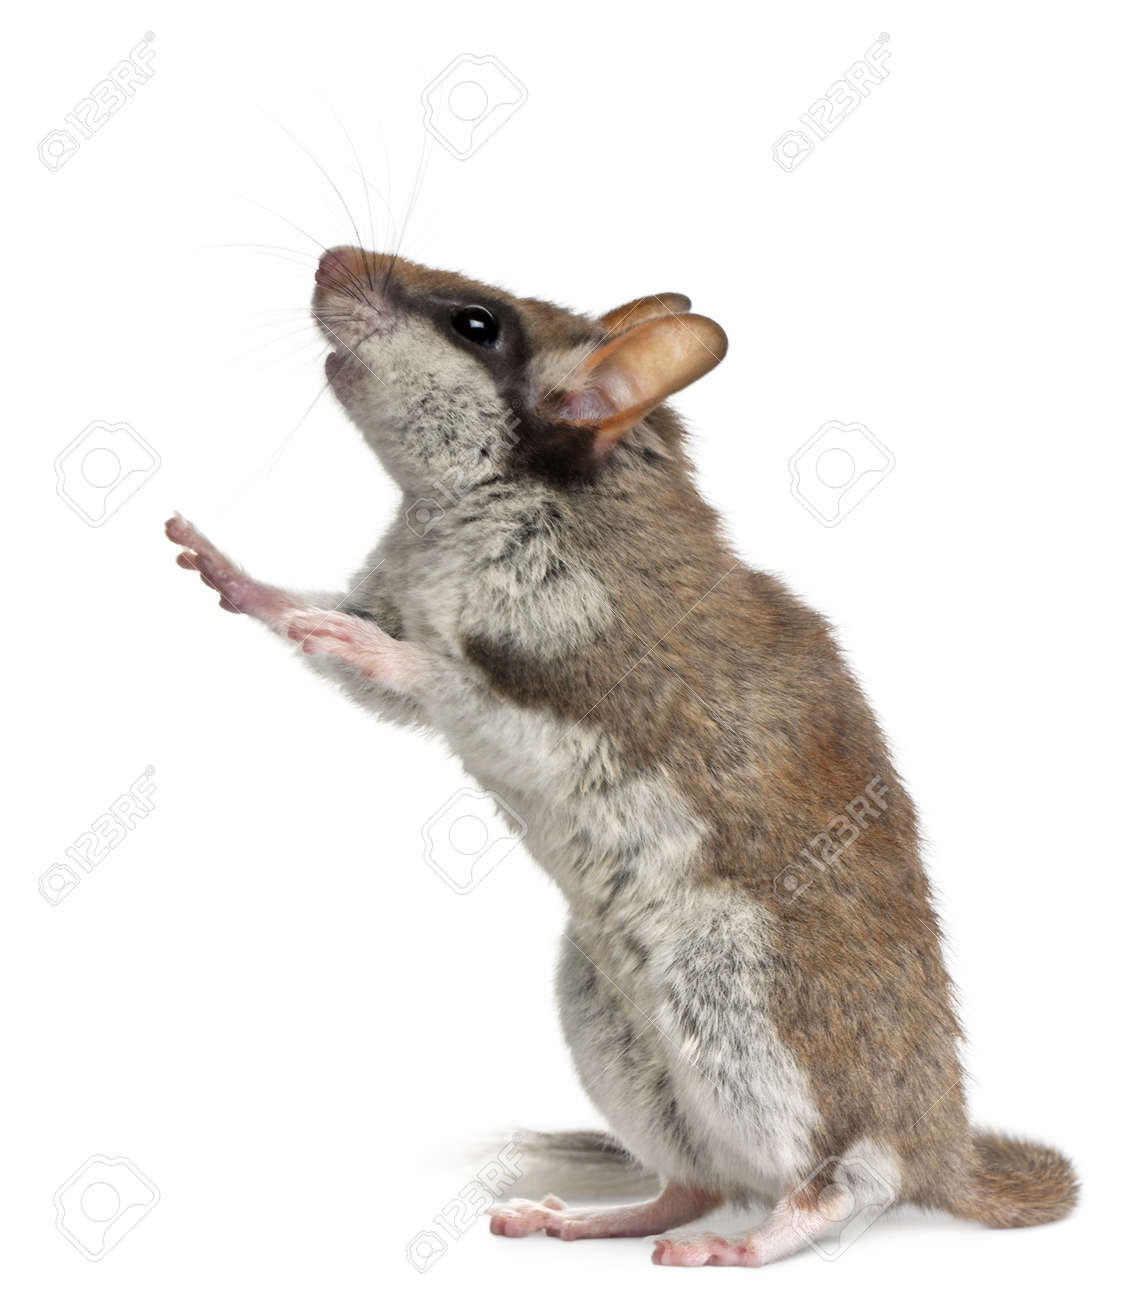 Garden Dormouse, Eliomys Quercinus, standing up in front of white background Stock Photo - 8021124